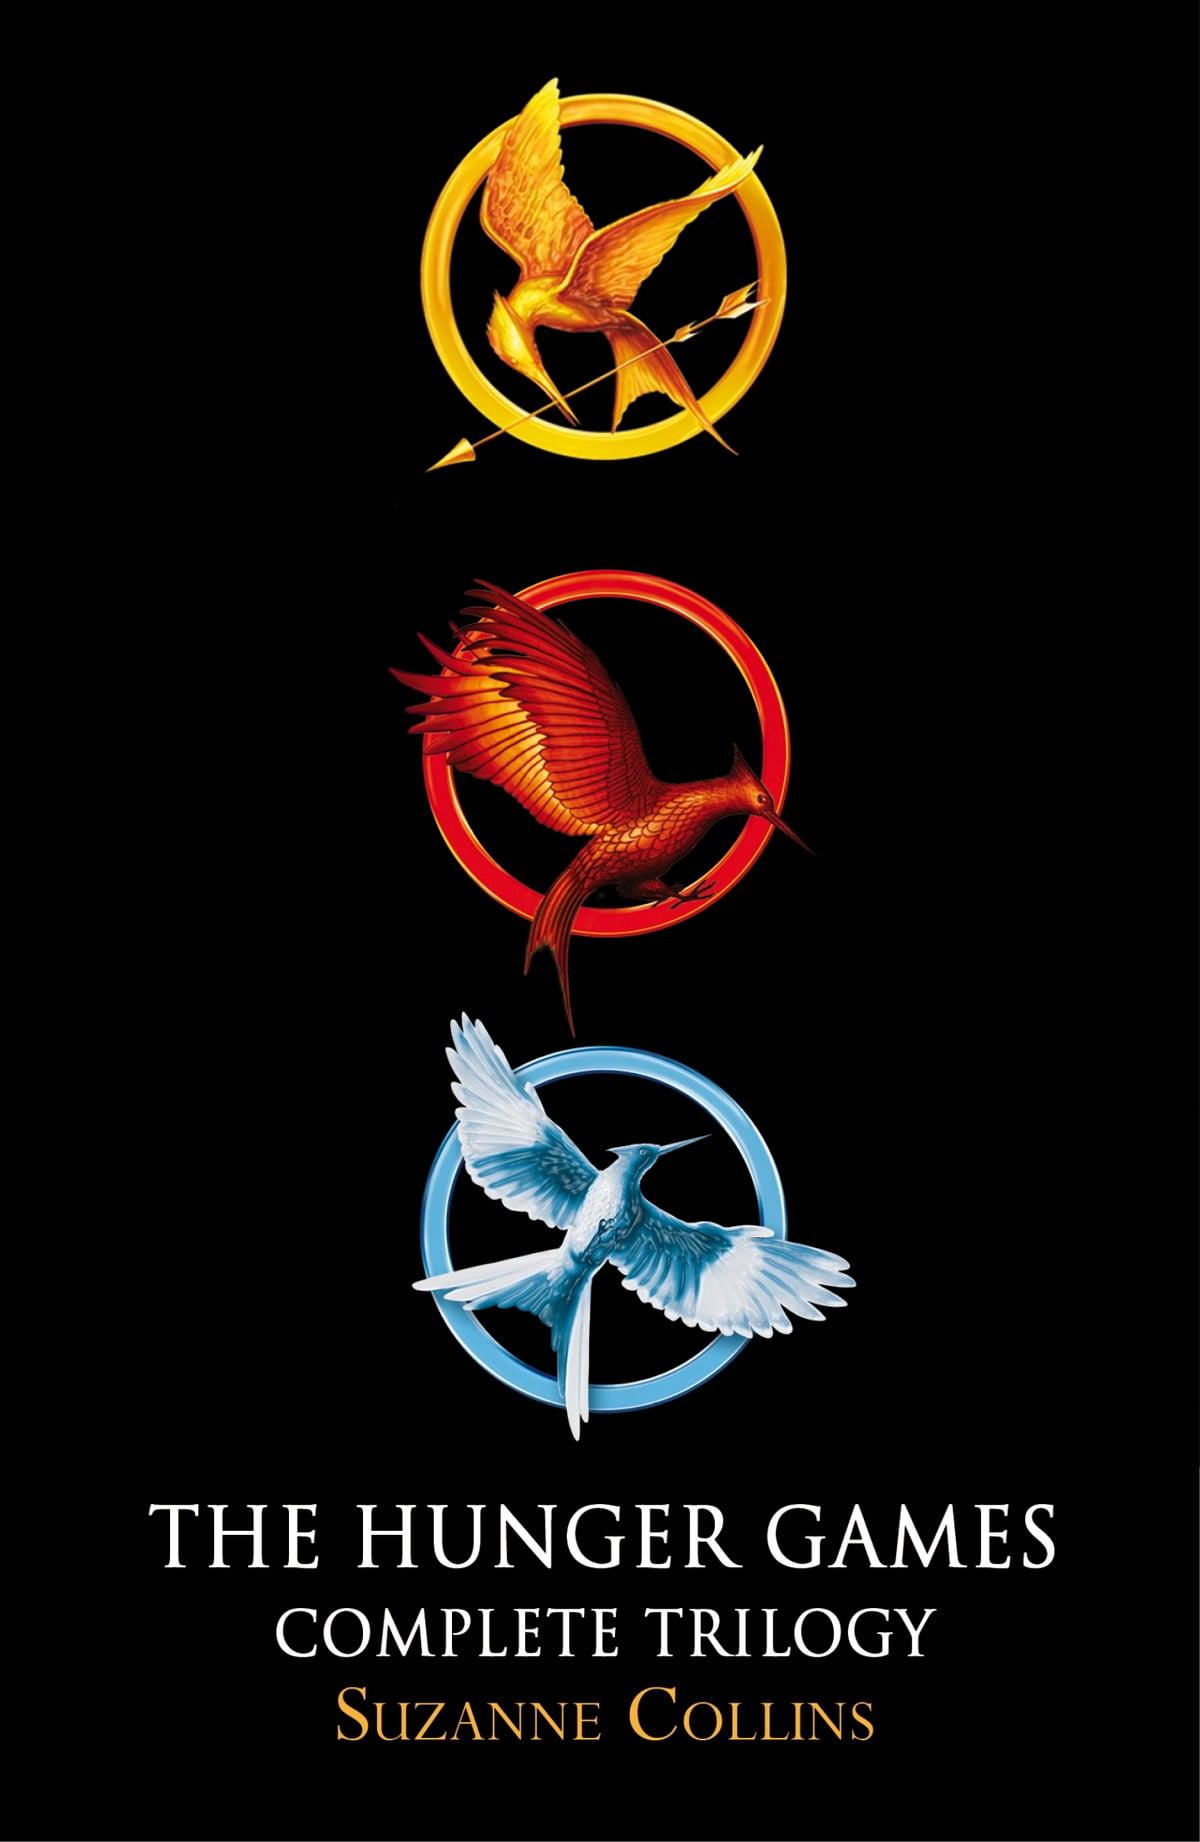 who dies in the hunger games trilogy